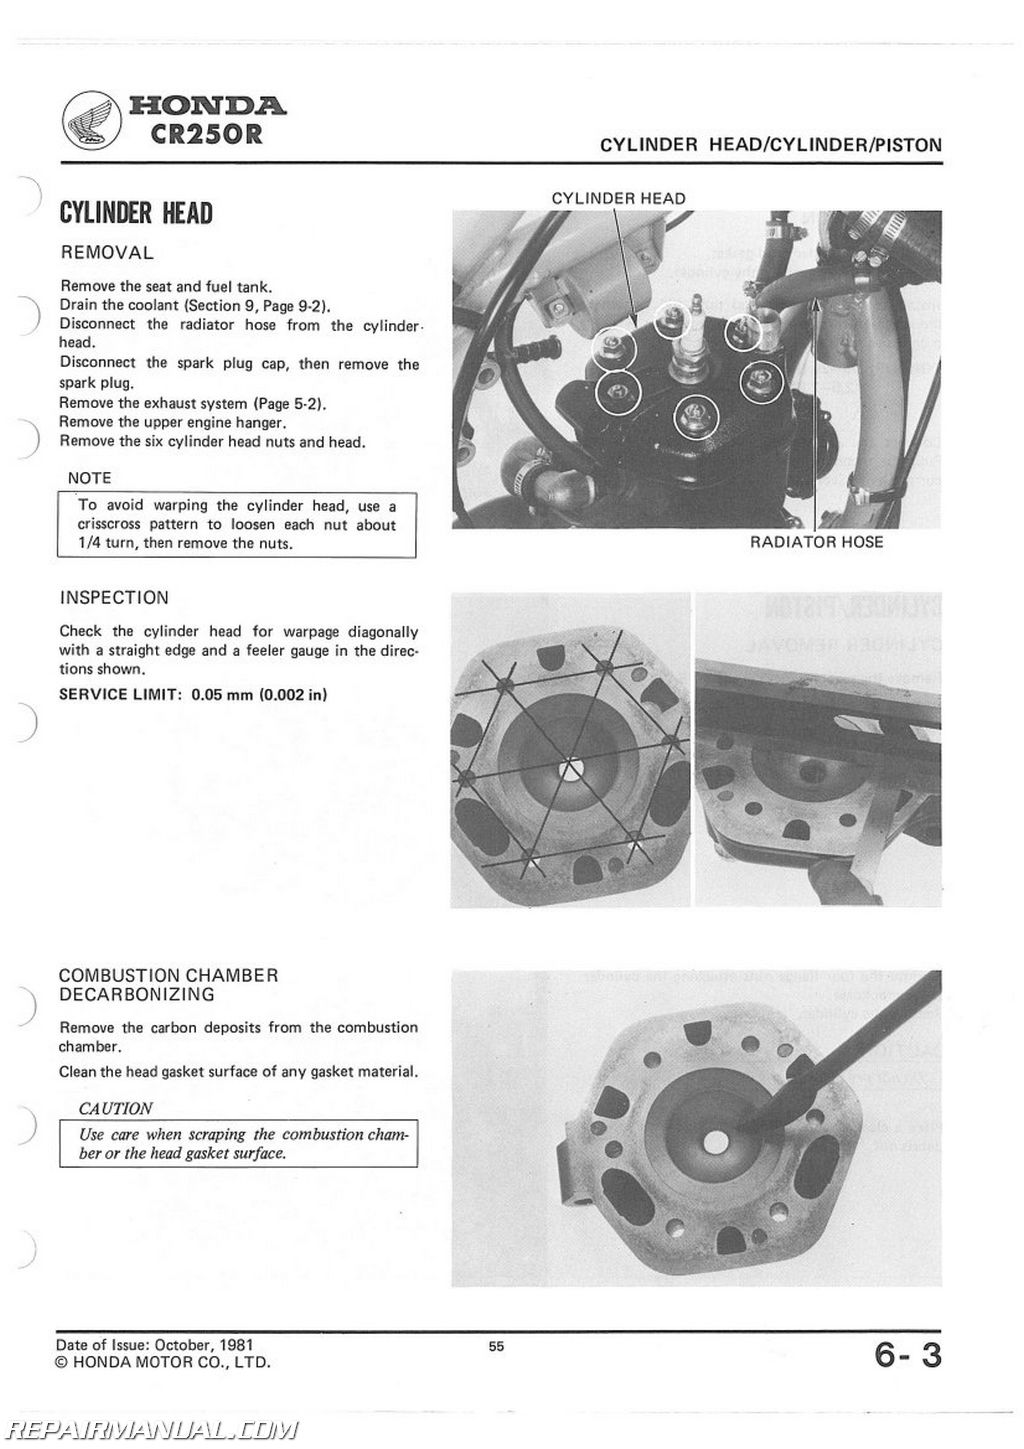 1982 1983 honda cr250r service manual rh repairmanual com honda cr250r service manual download honda crf250r service manual pdf